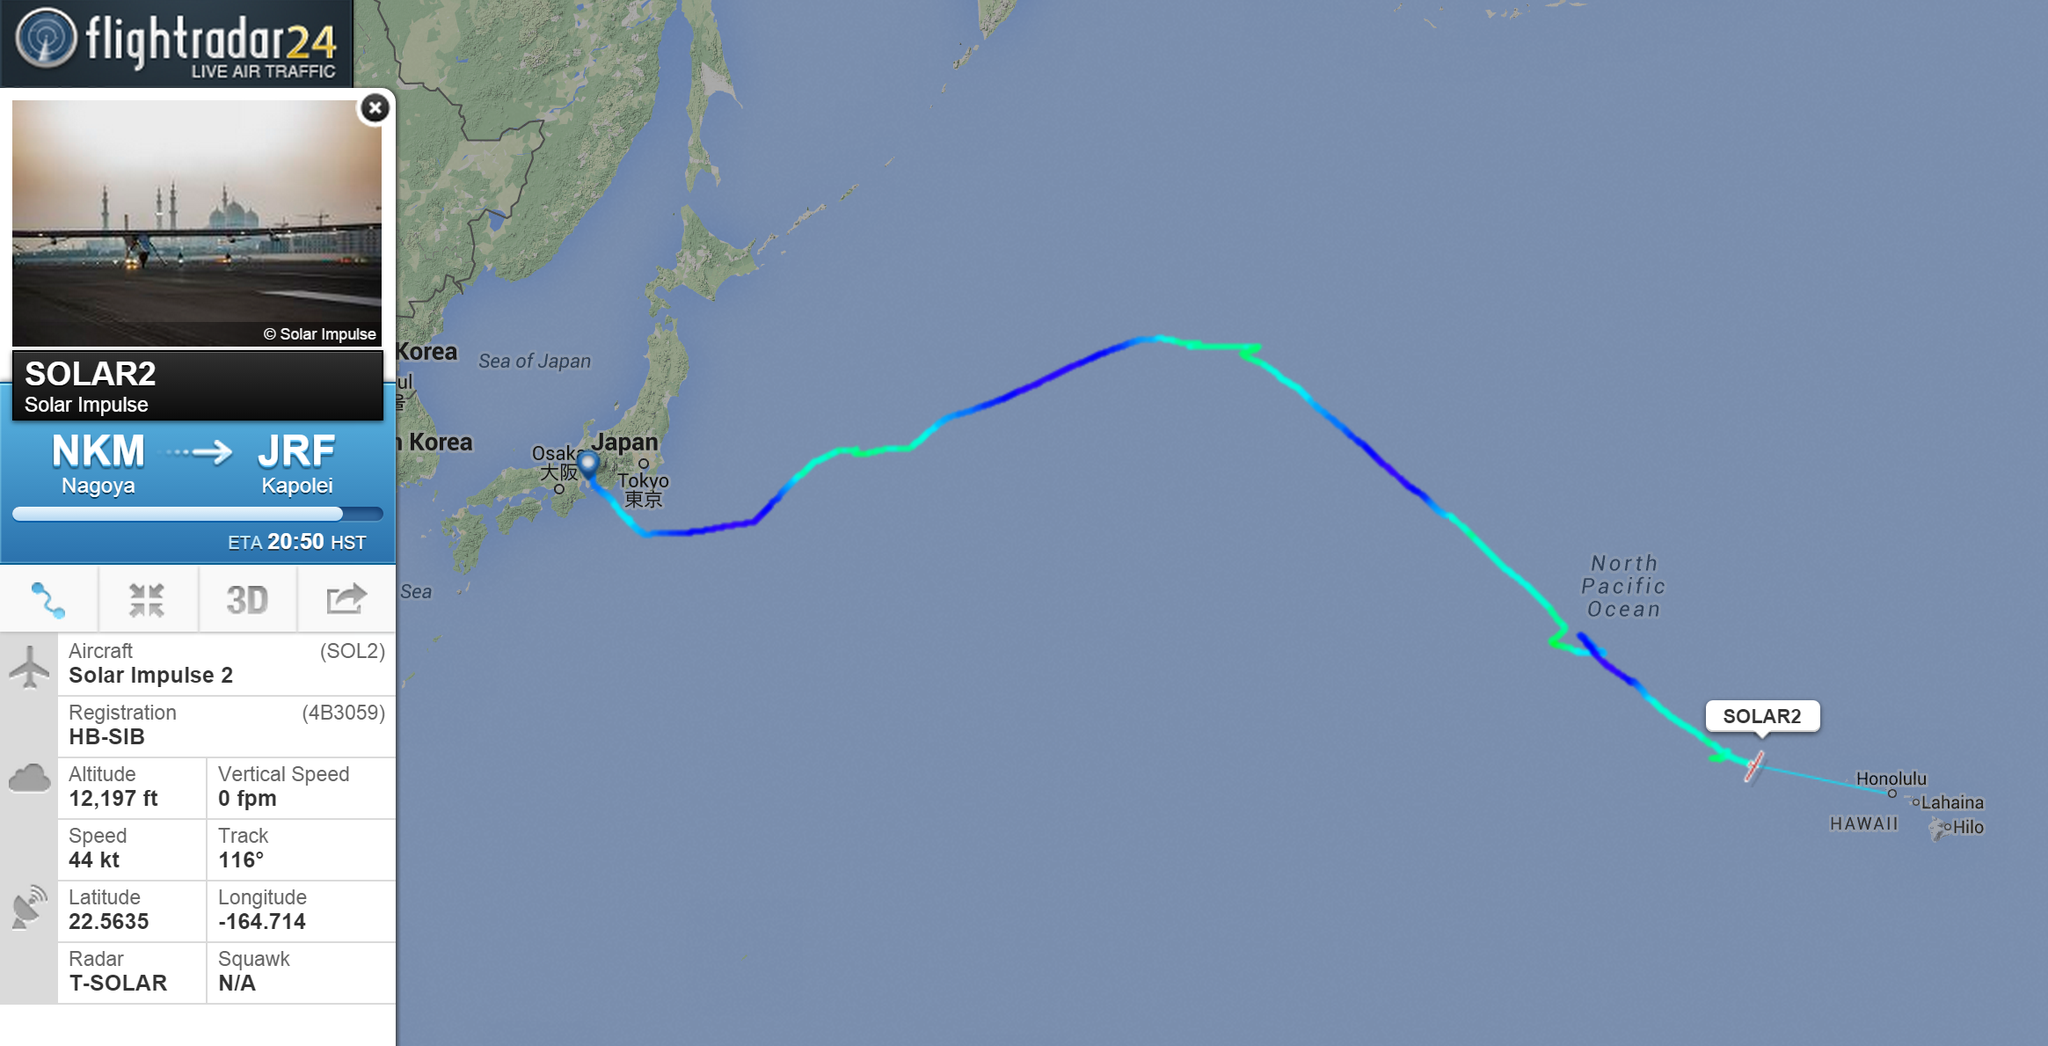 RT @flightradar24: 100 hours ago @andreborschberg and @solarimpulse took off from Japan! Now Hawaii is less than 1000 km away http://t.co/svZmAhbweQ